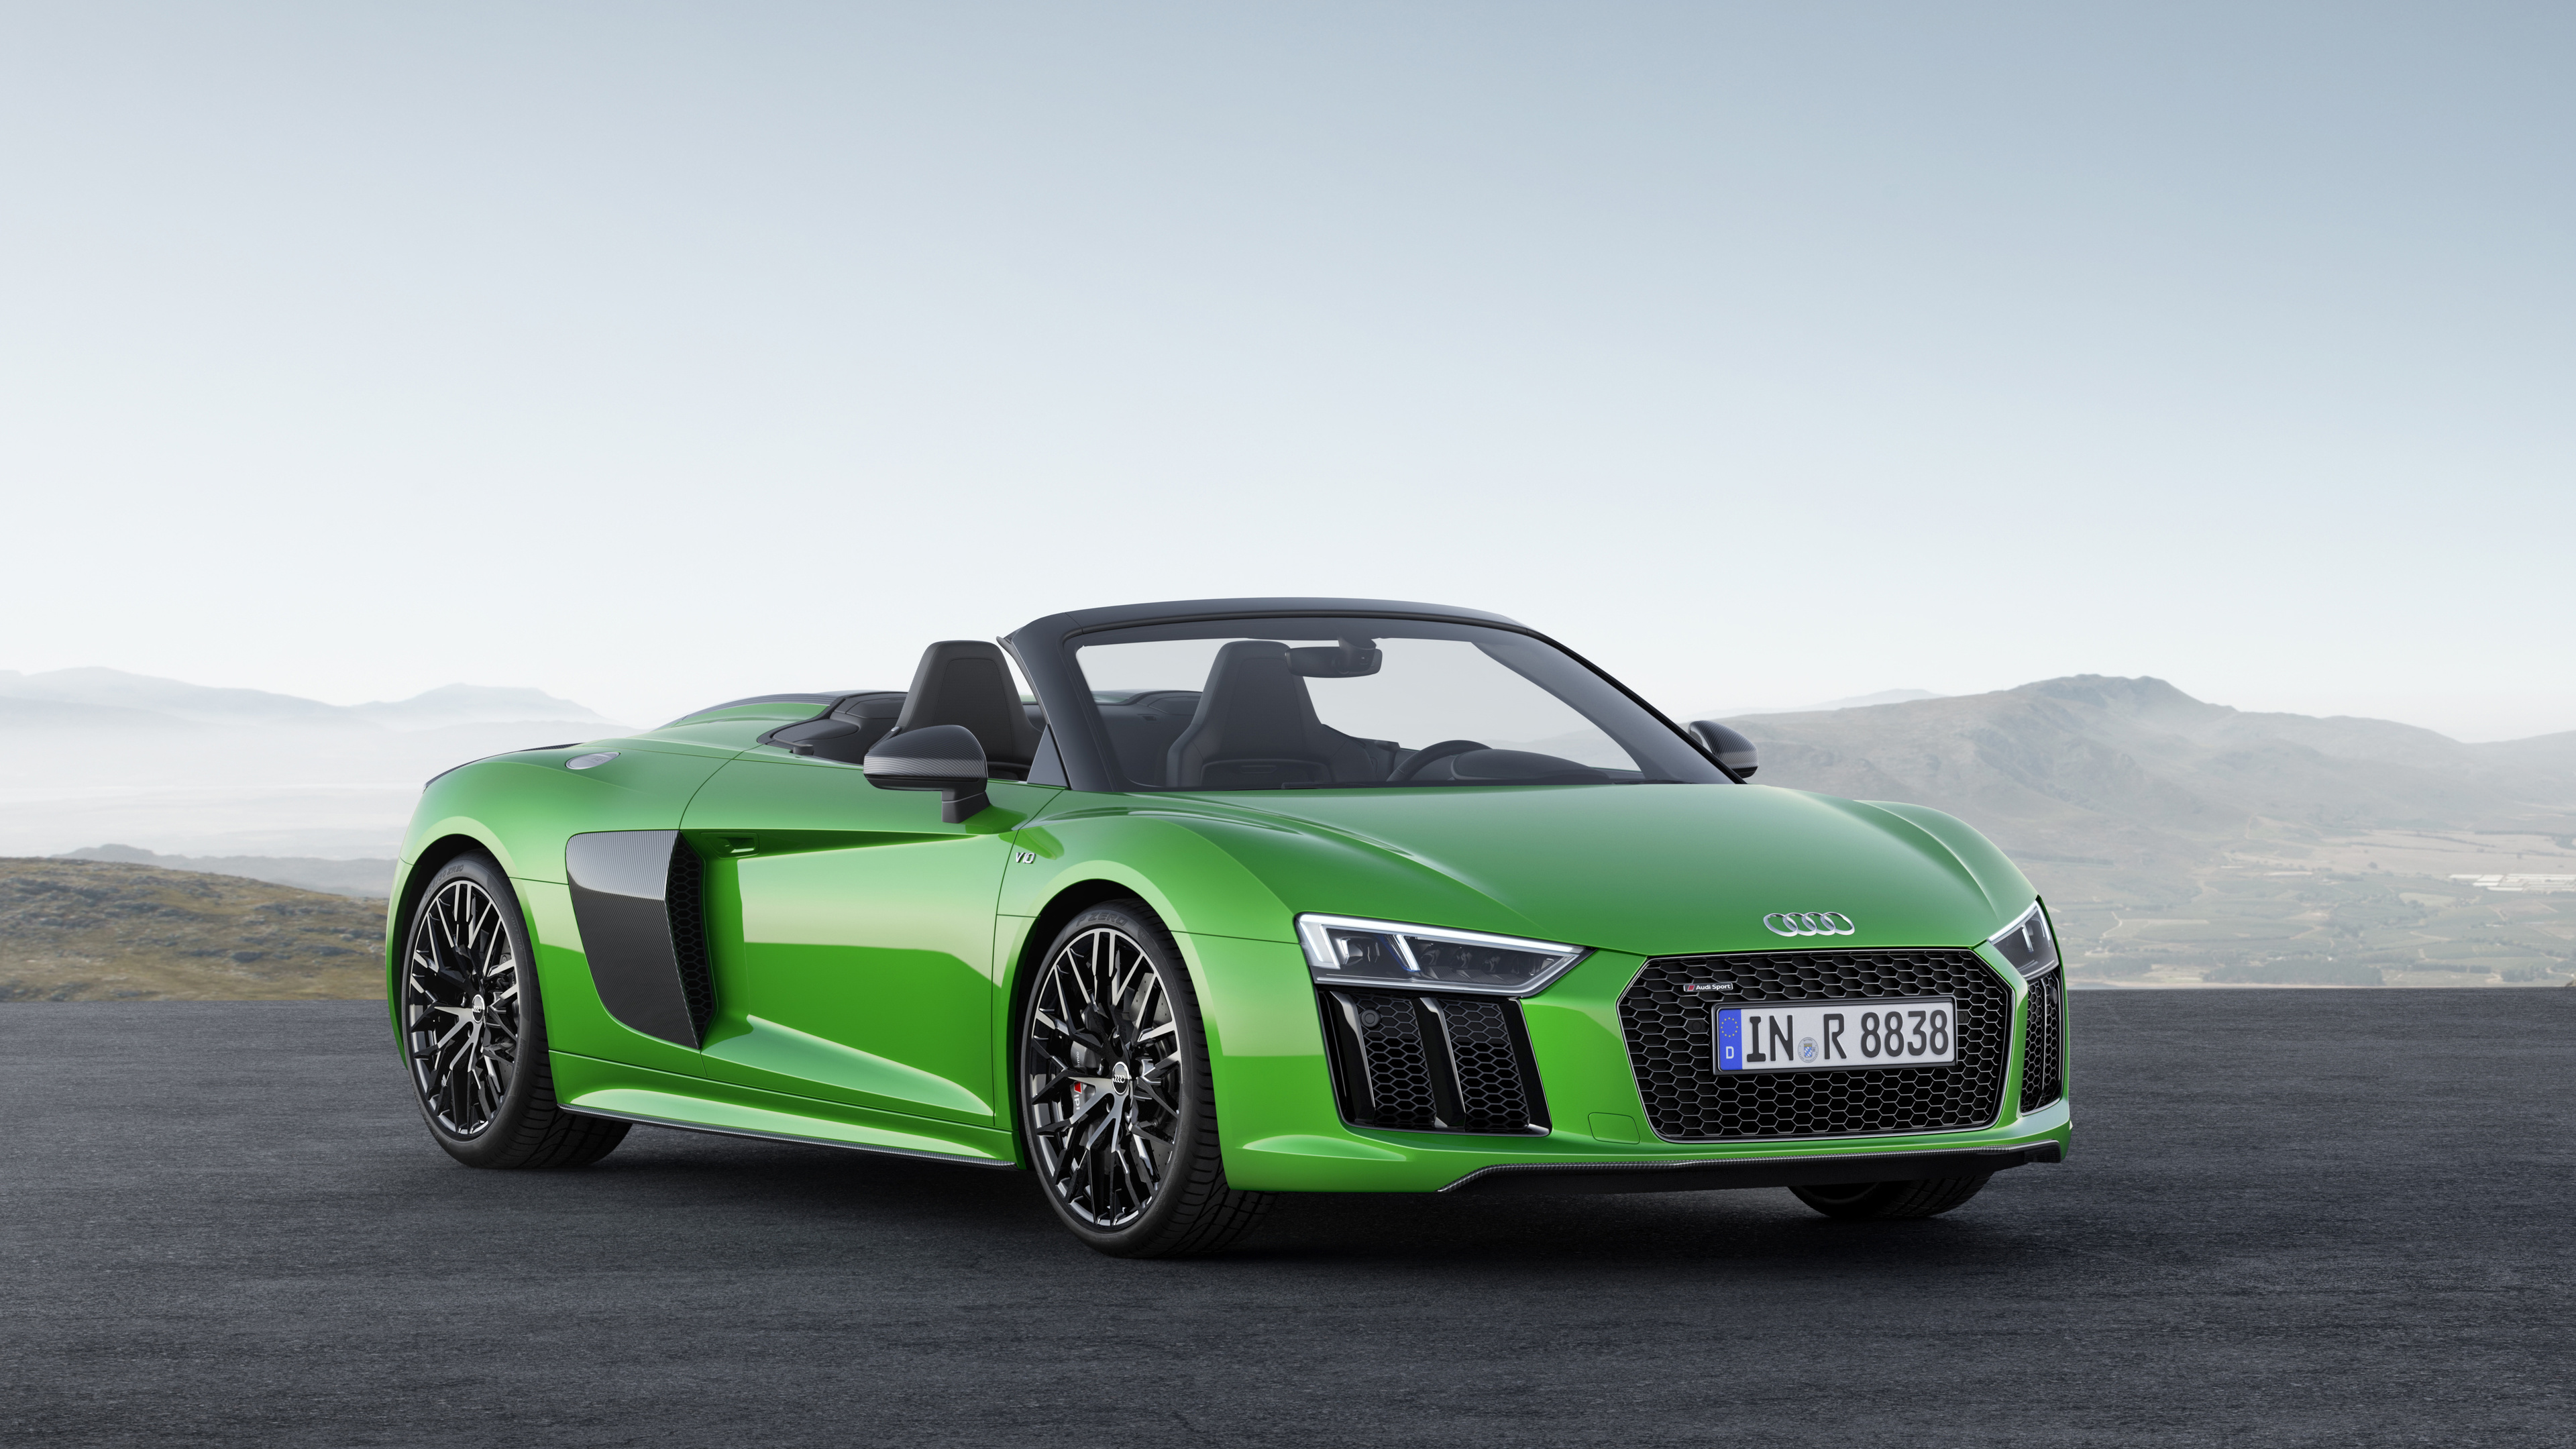 Audi R8 Spyder V10 2019 hd-wallpapers, cars wallpapers ...